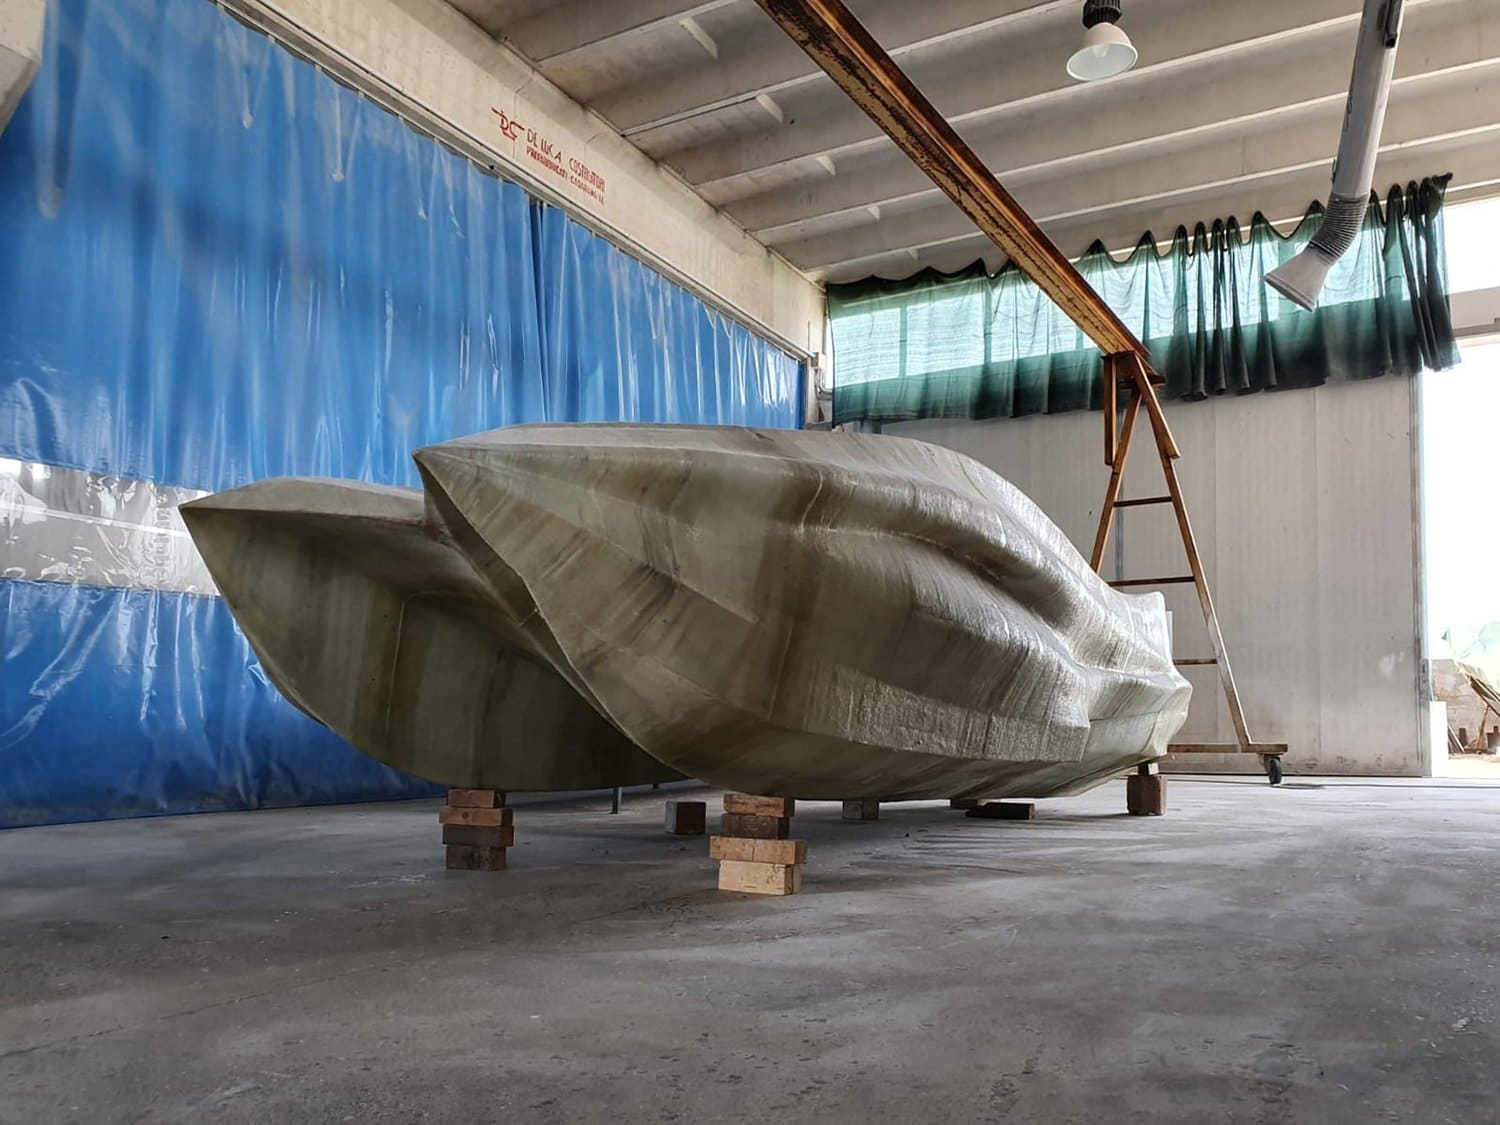 moi composites 3D printed boat